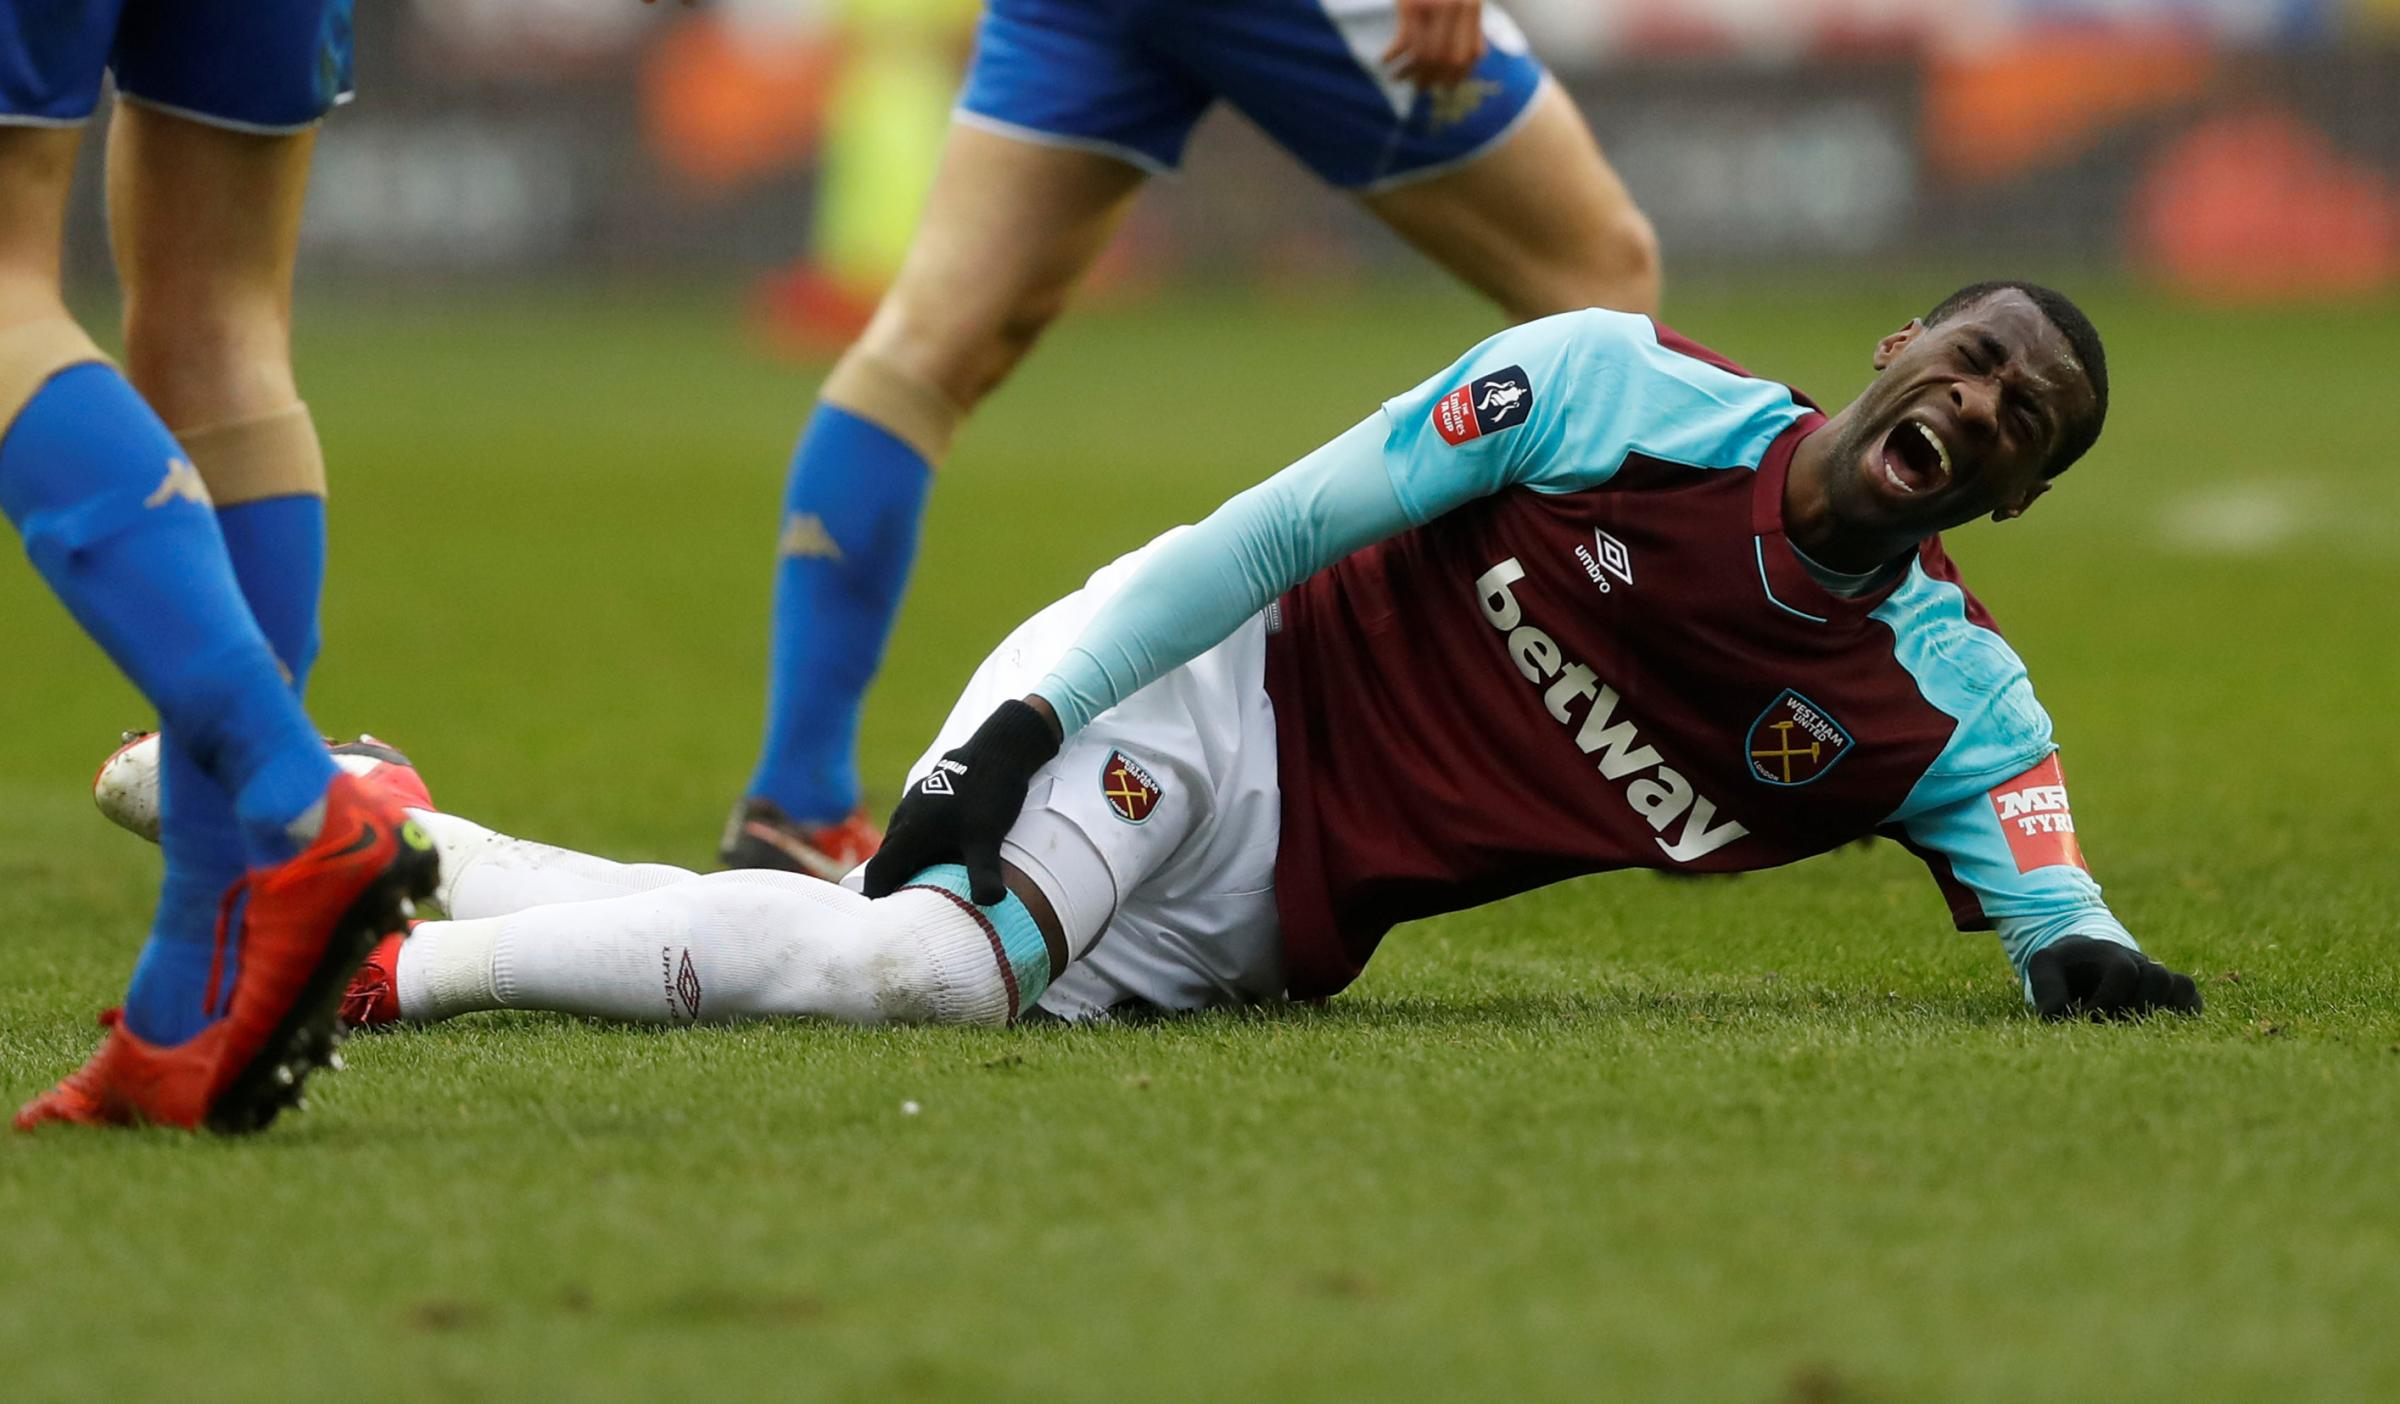 Pedro Obiang sustained the injury in the Hammers' FA Cup exit at Wigan Athletic. Picture: Action Images